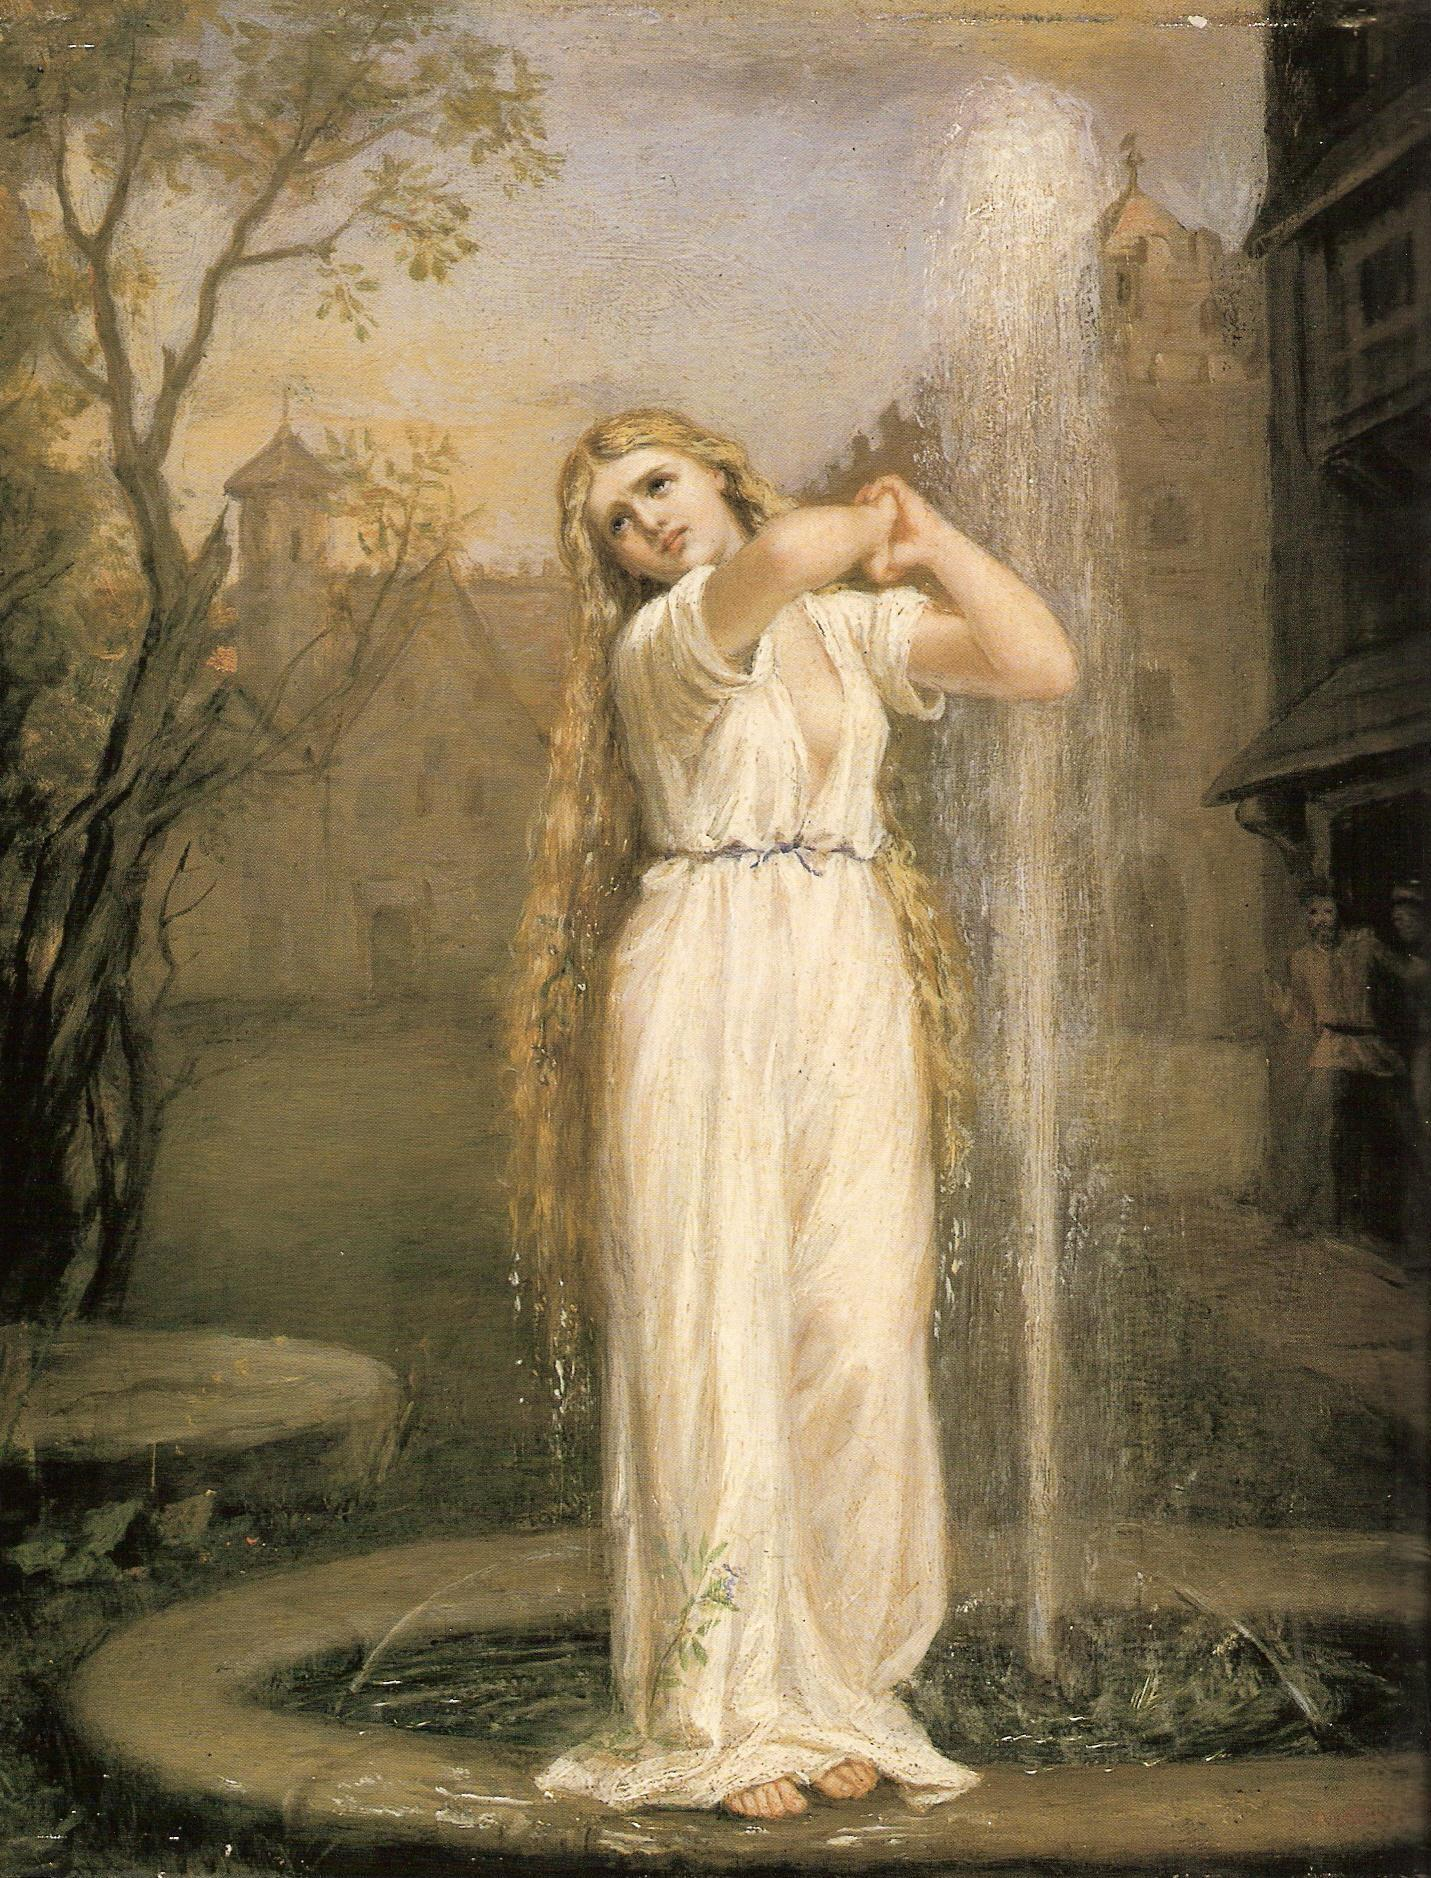 John William Waterhouse, Undine, 1872